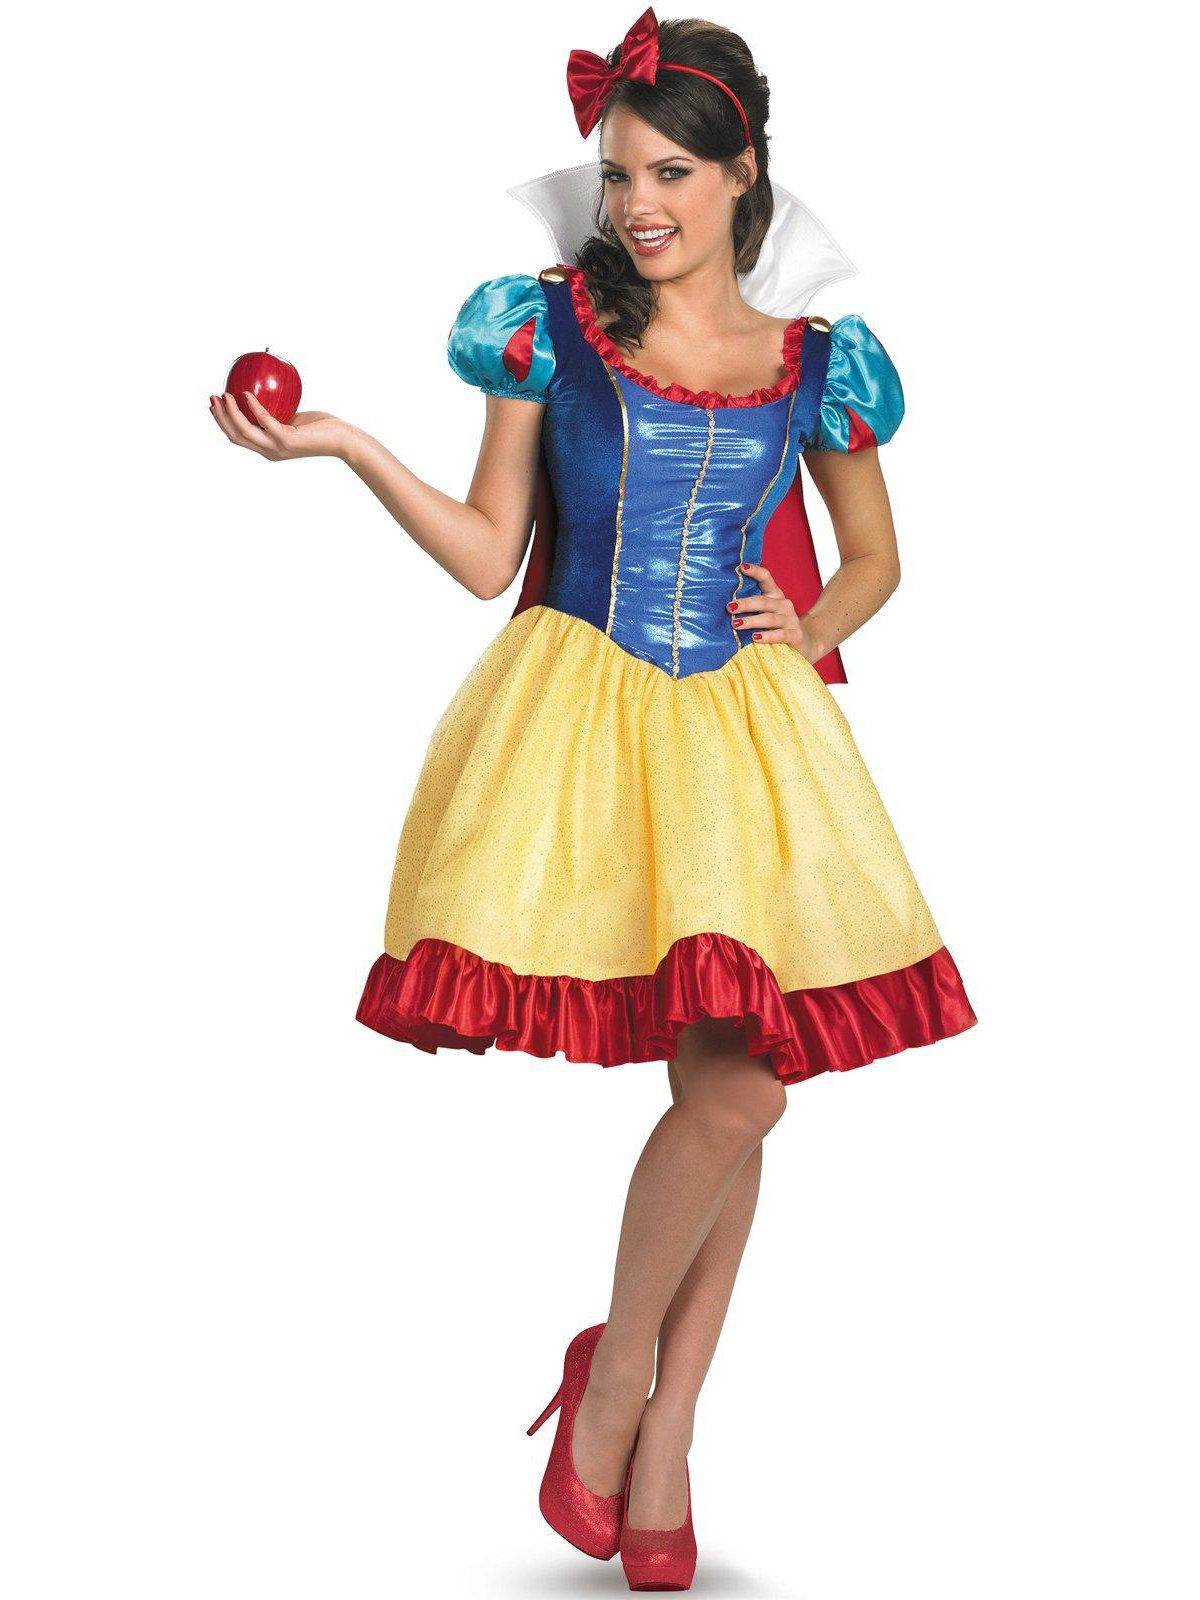 Adult Deluxe Snow White Fab Disney Princess Costume  sc 1 st  Wholesale Halloween Costumes & Plus Size Disney Princess Snow White Fab Deluxe Costume For Women ...